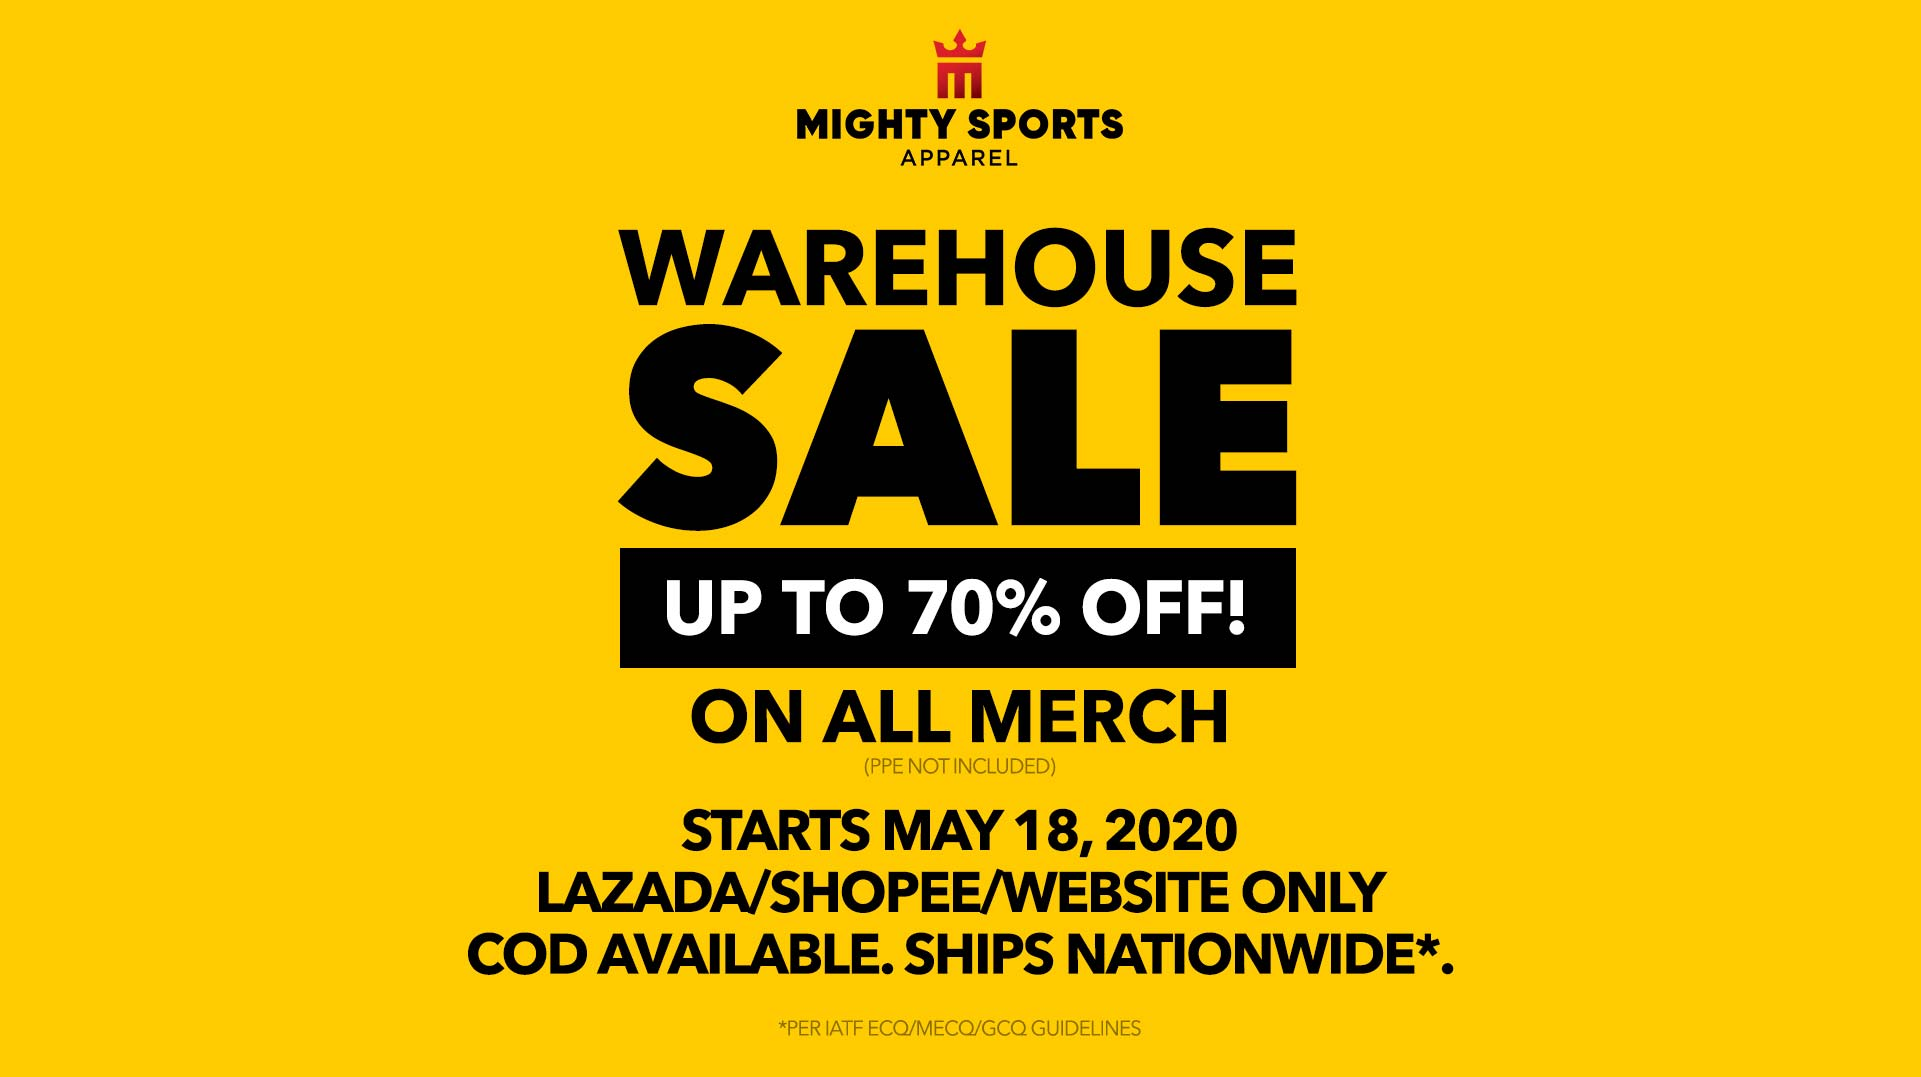 mighty sports warehouse sale 2020